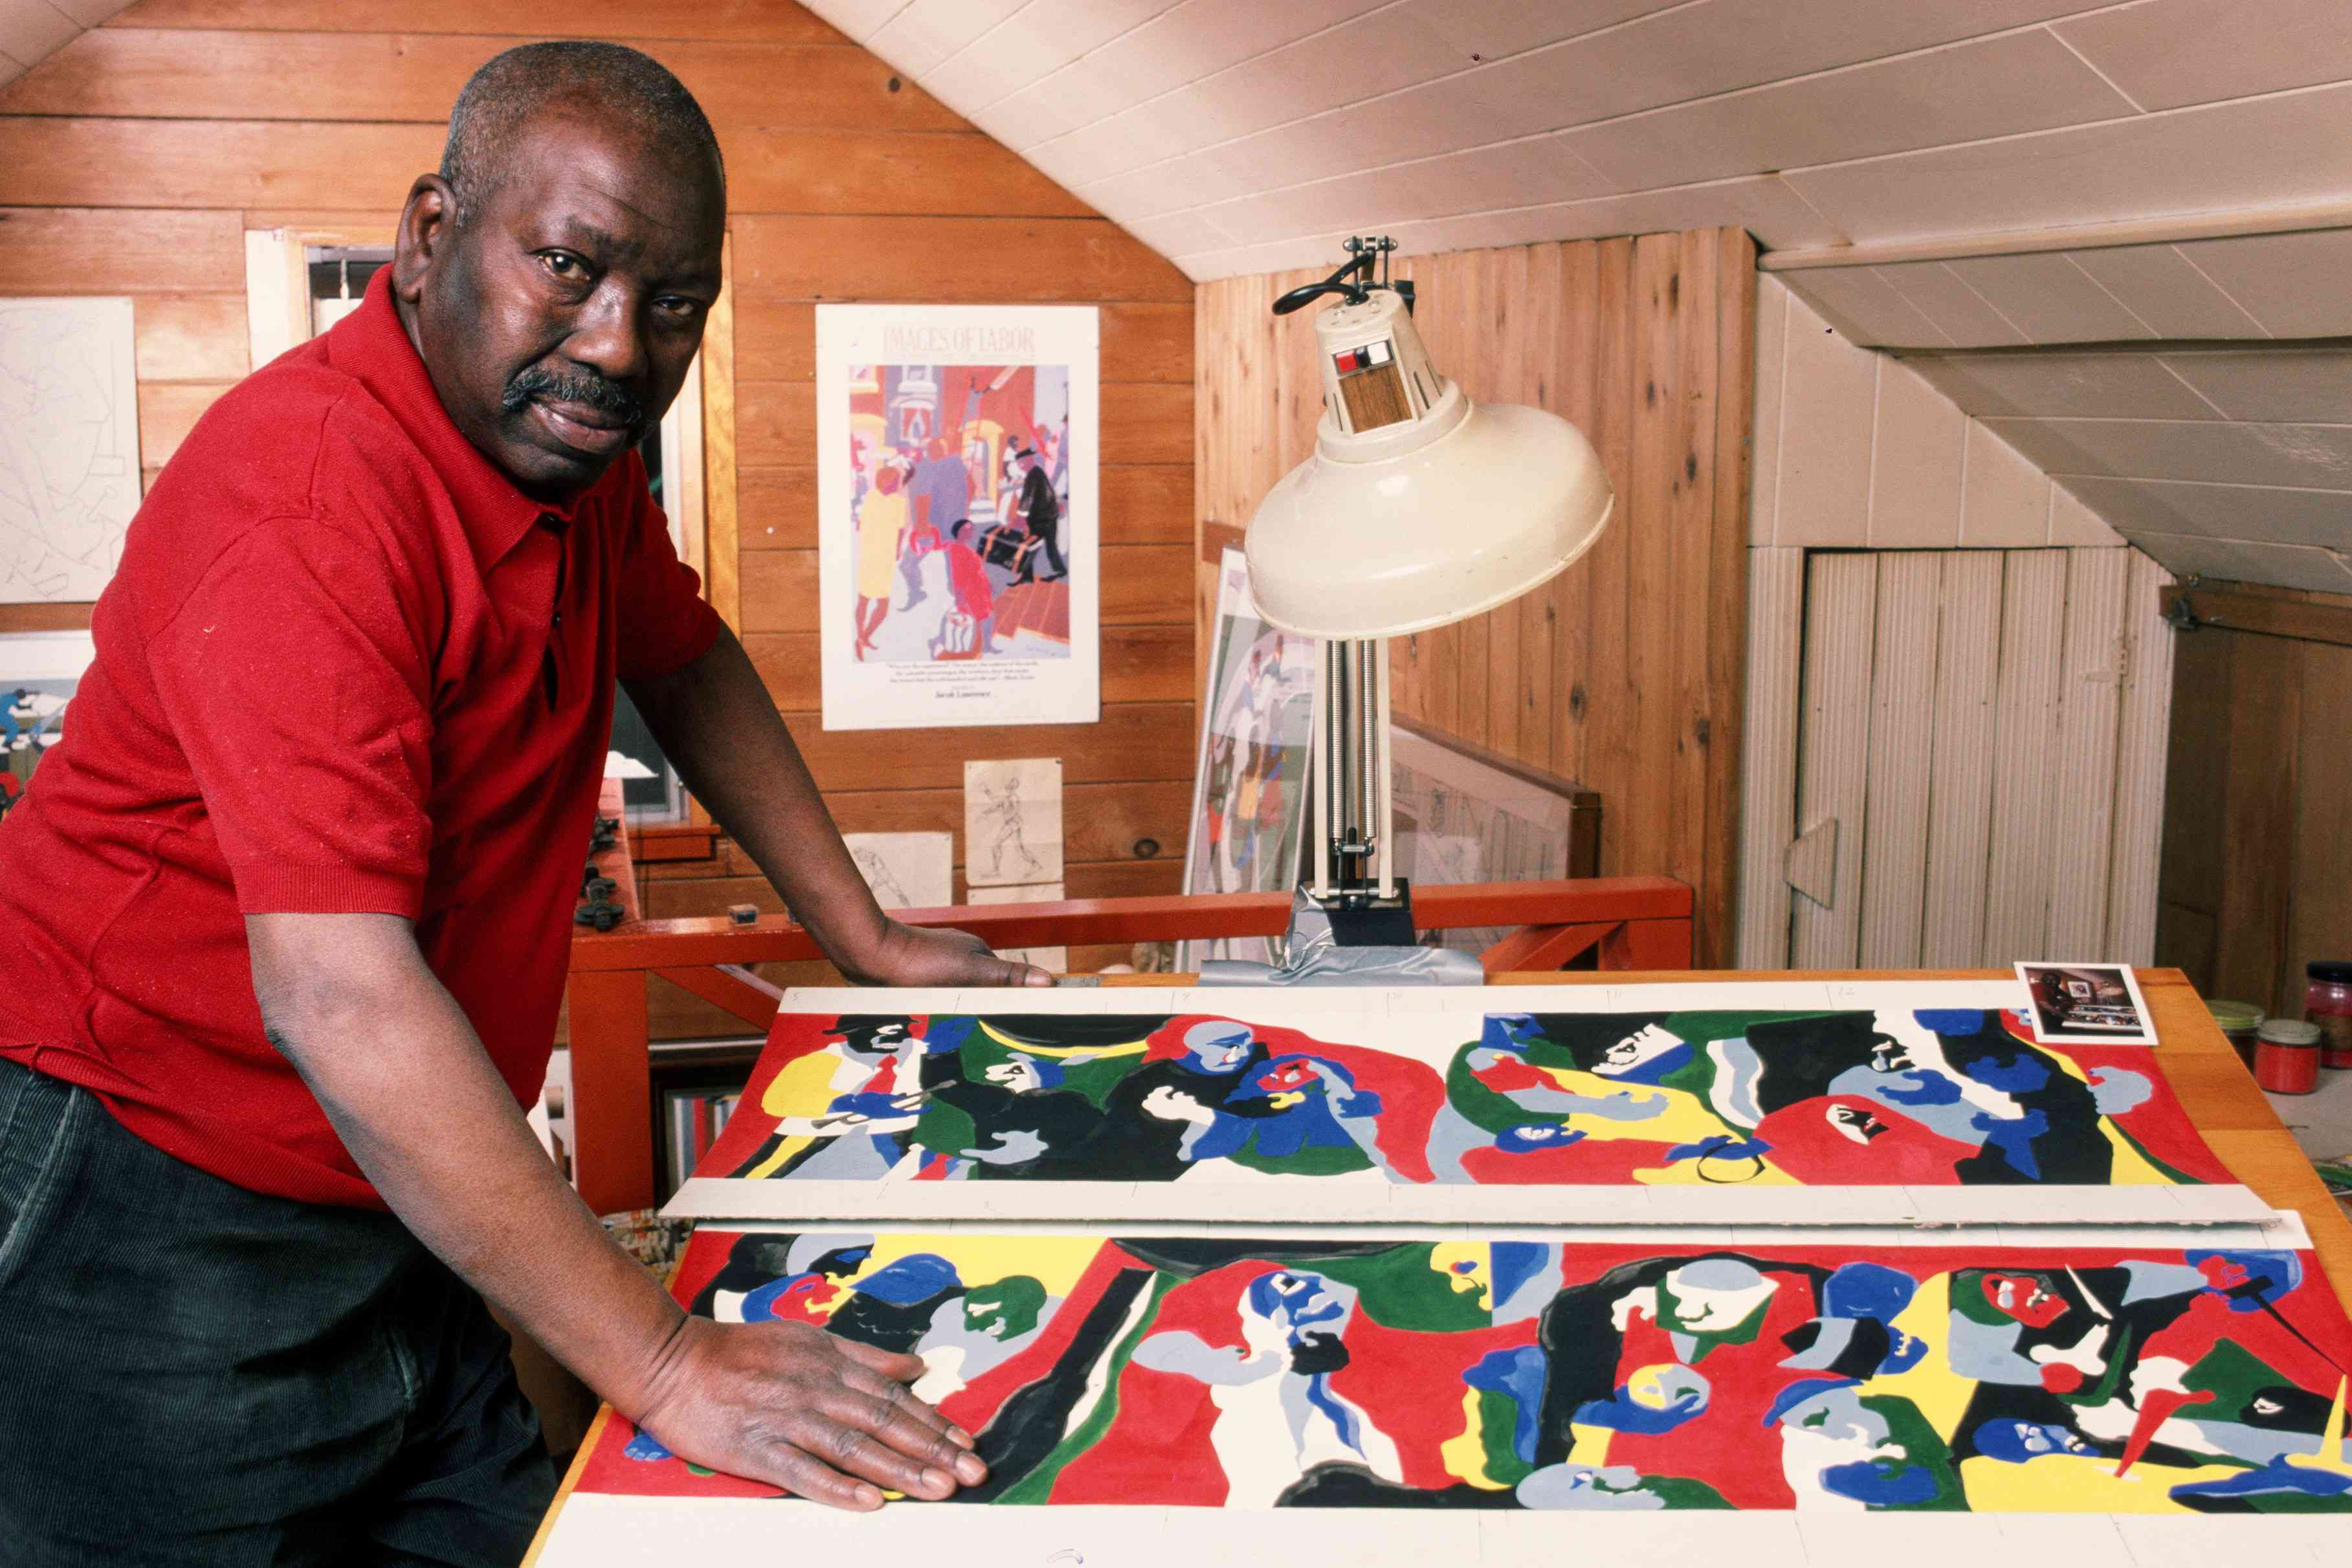 Artist Jacob Lawrence stands hunched over his work, a colorful painting